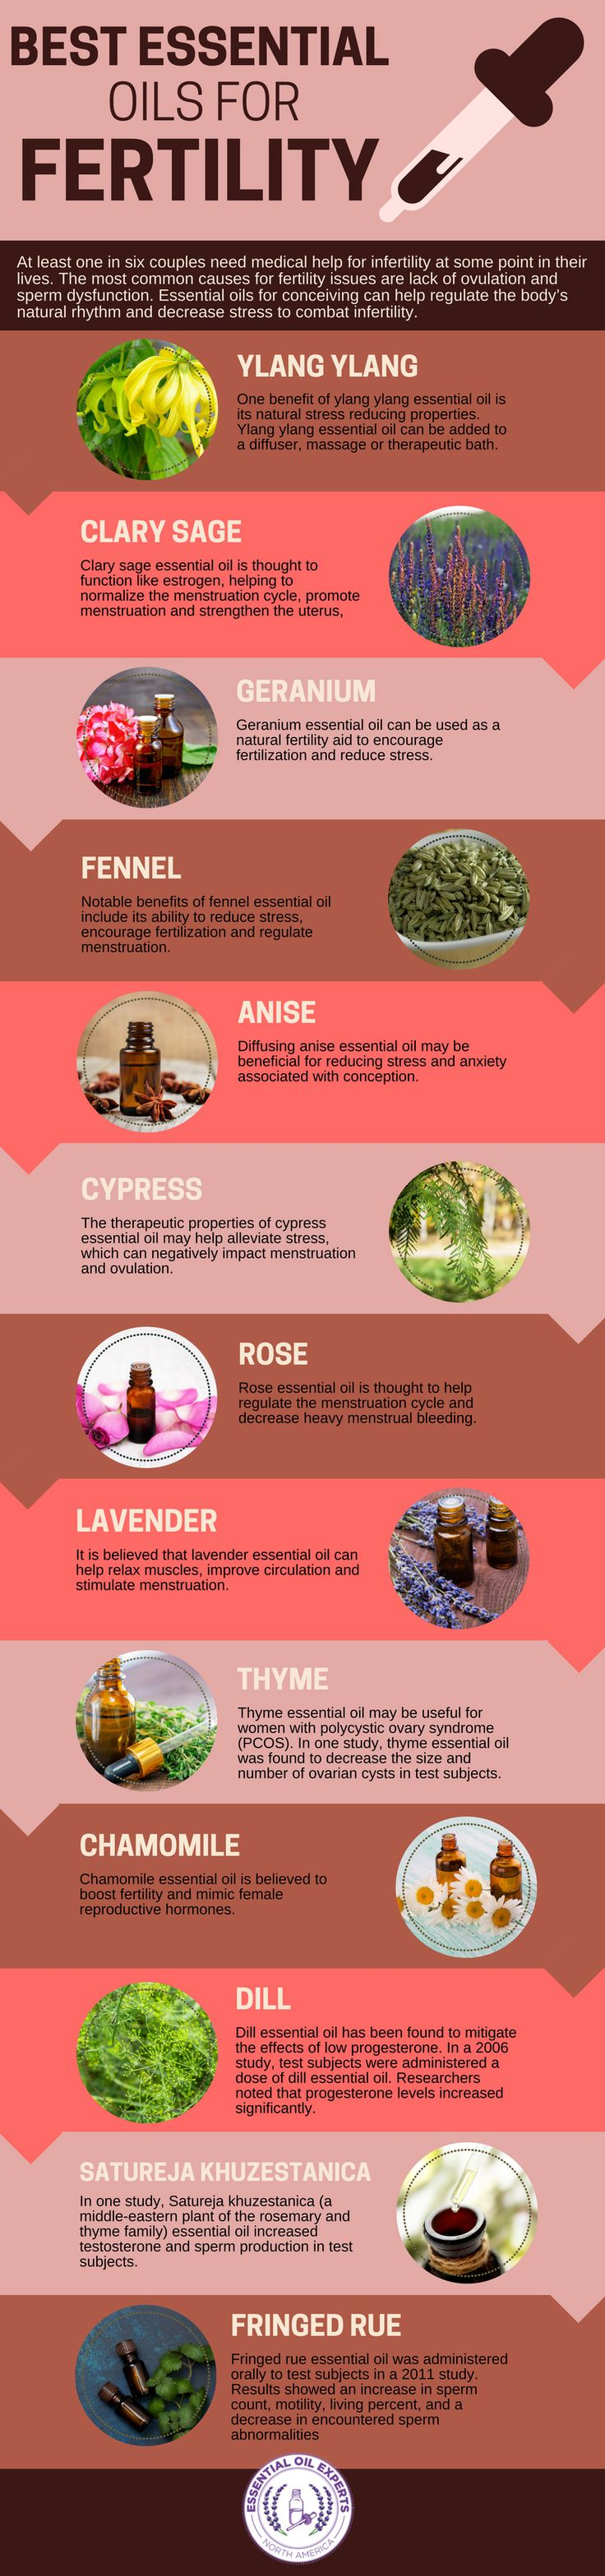 Essential Oils for Fertility: Pregnancy, PCOS, Progesterone & Male Infertility